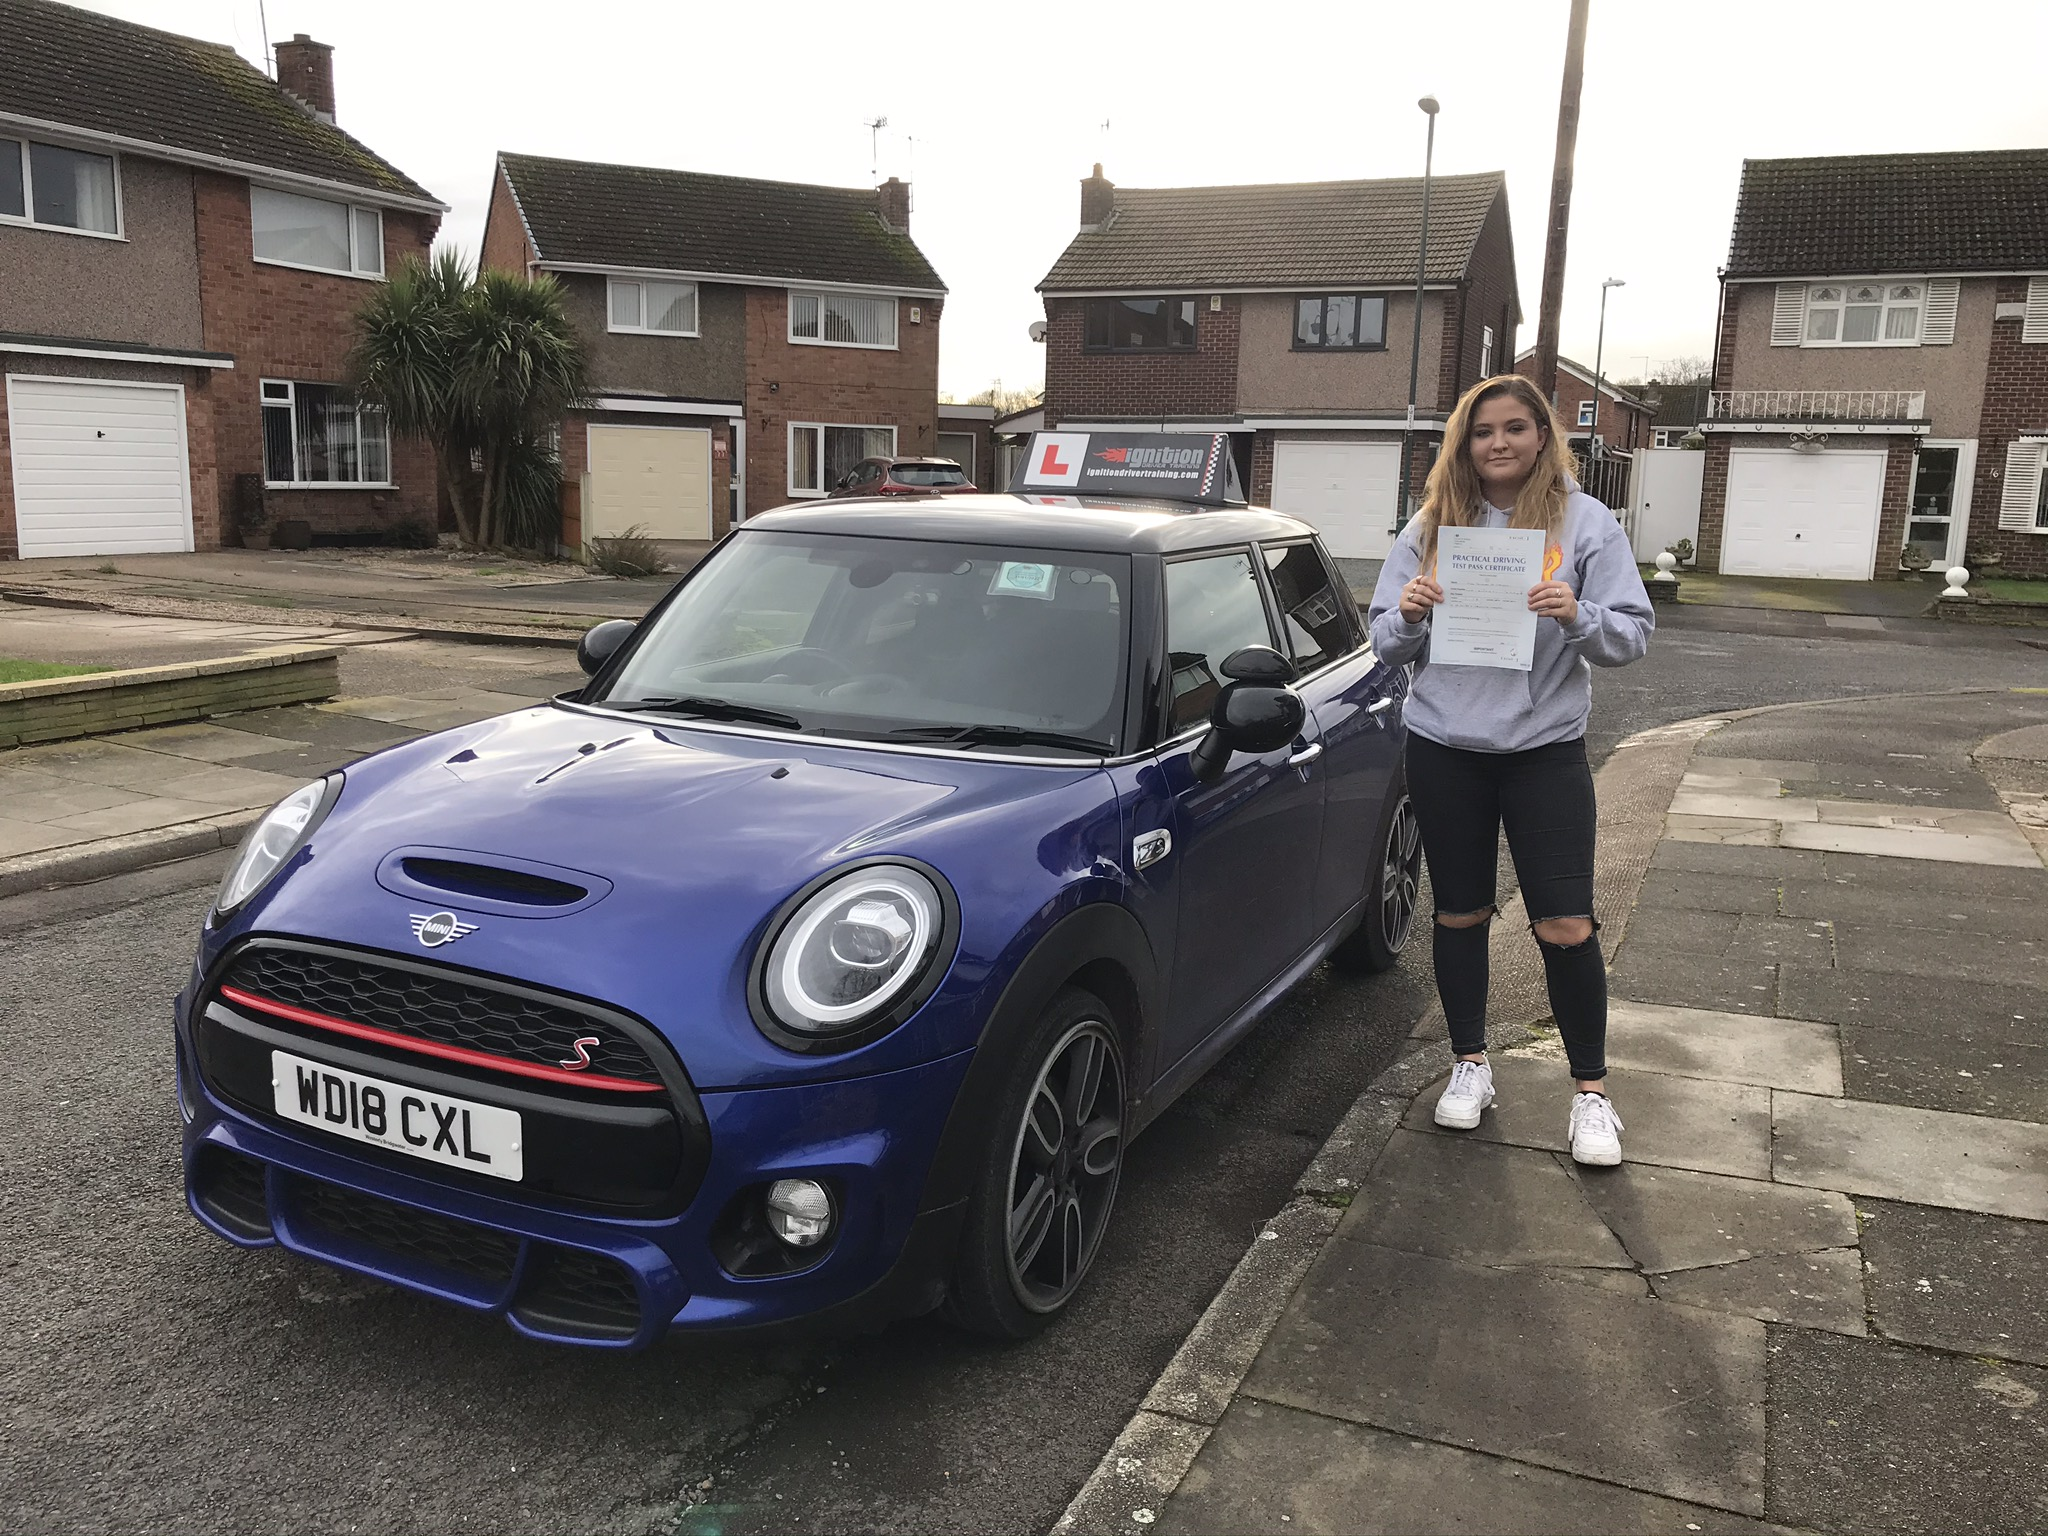 Scarlet passed her driving test!